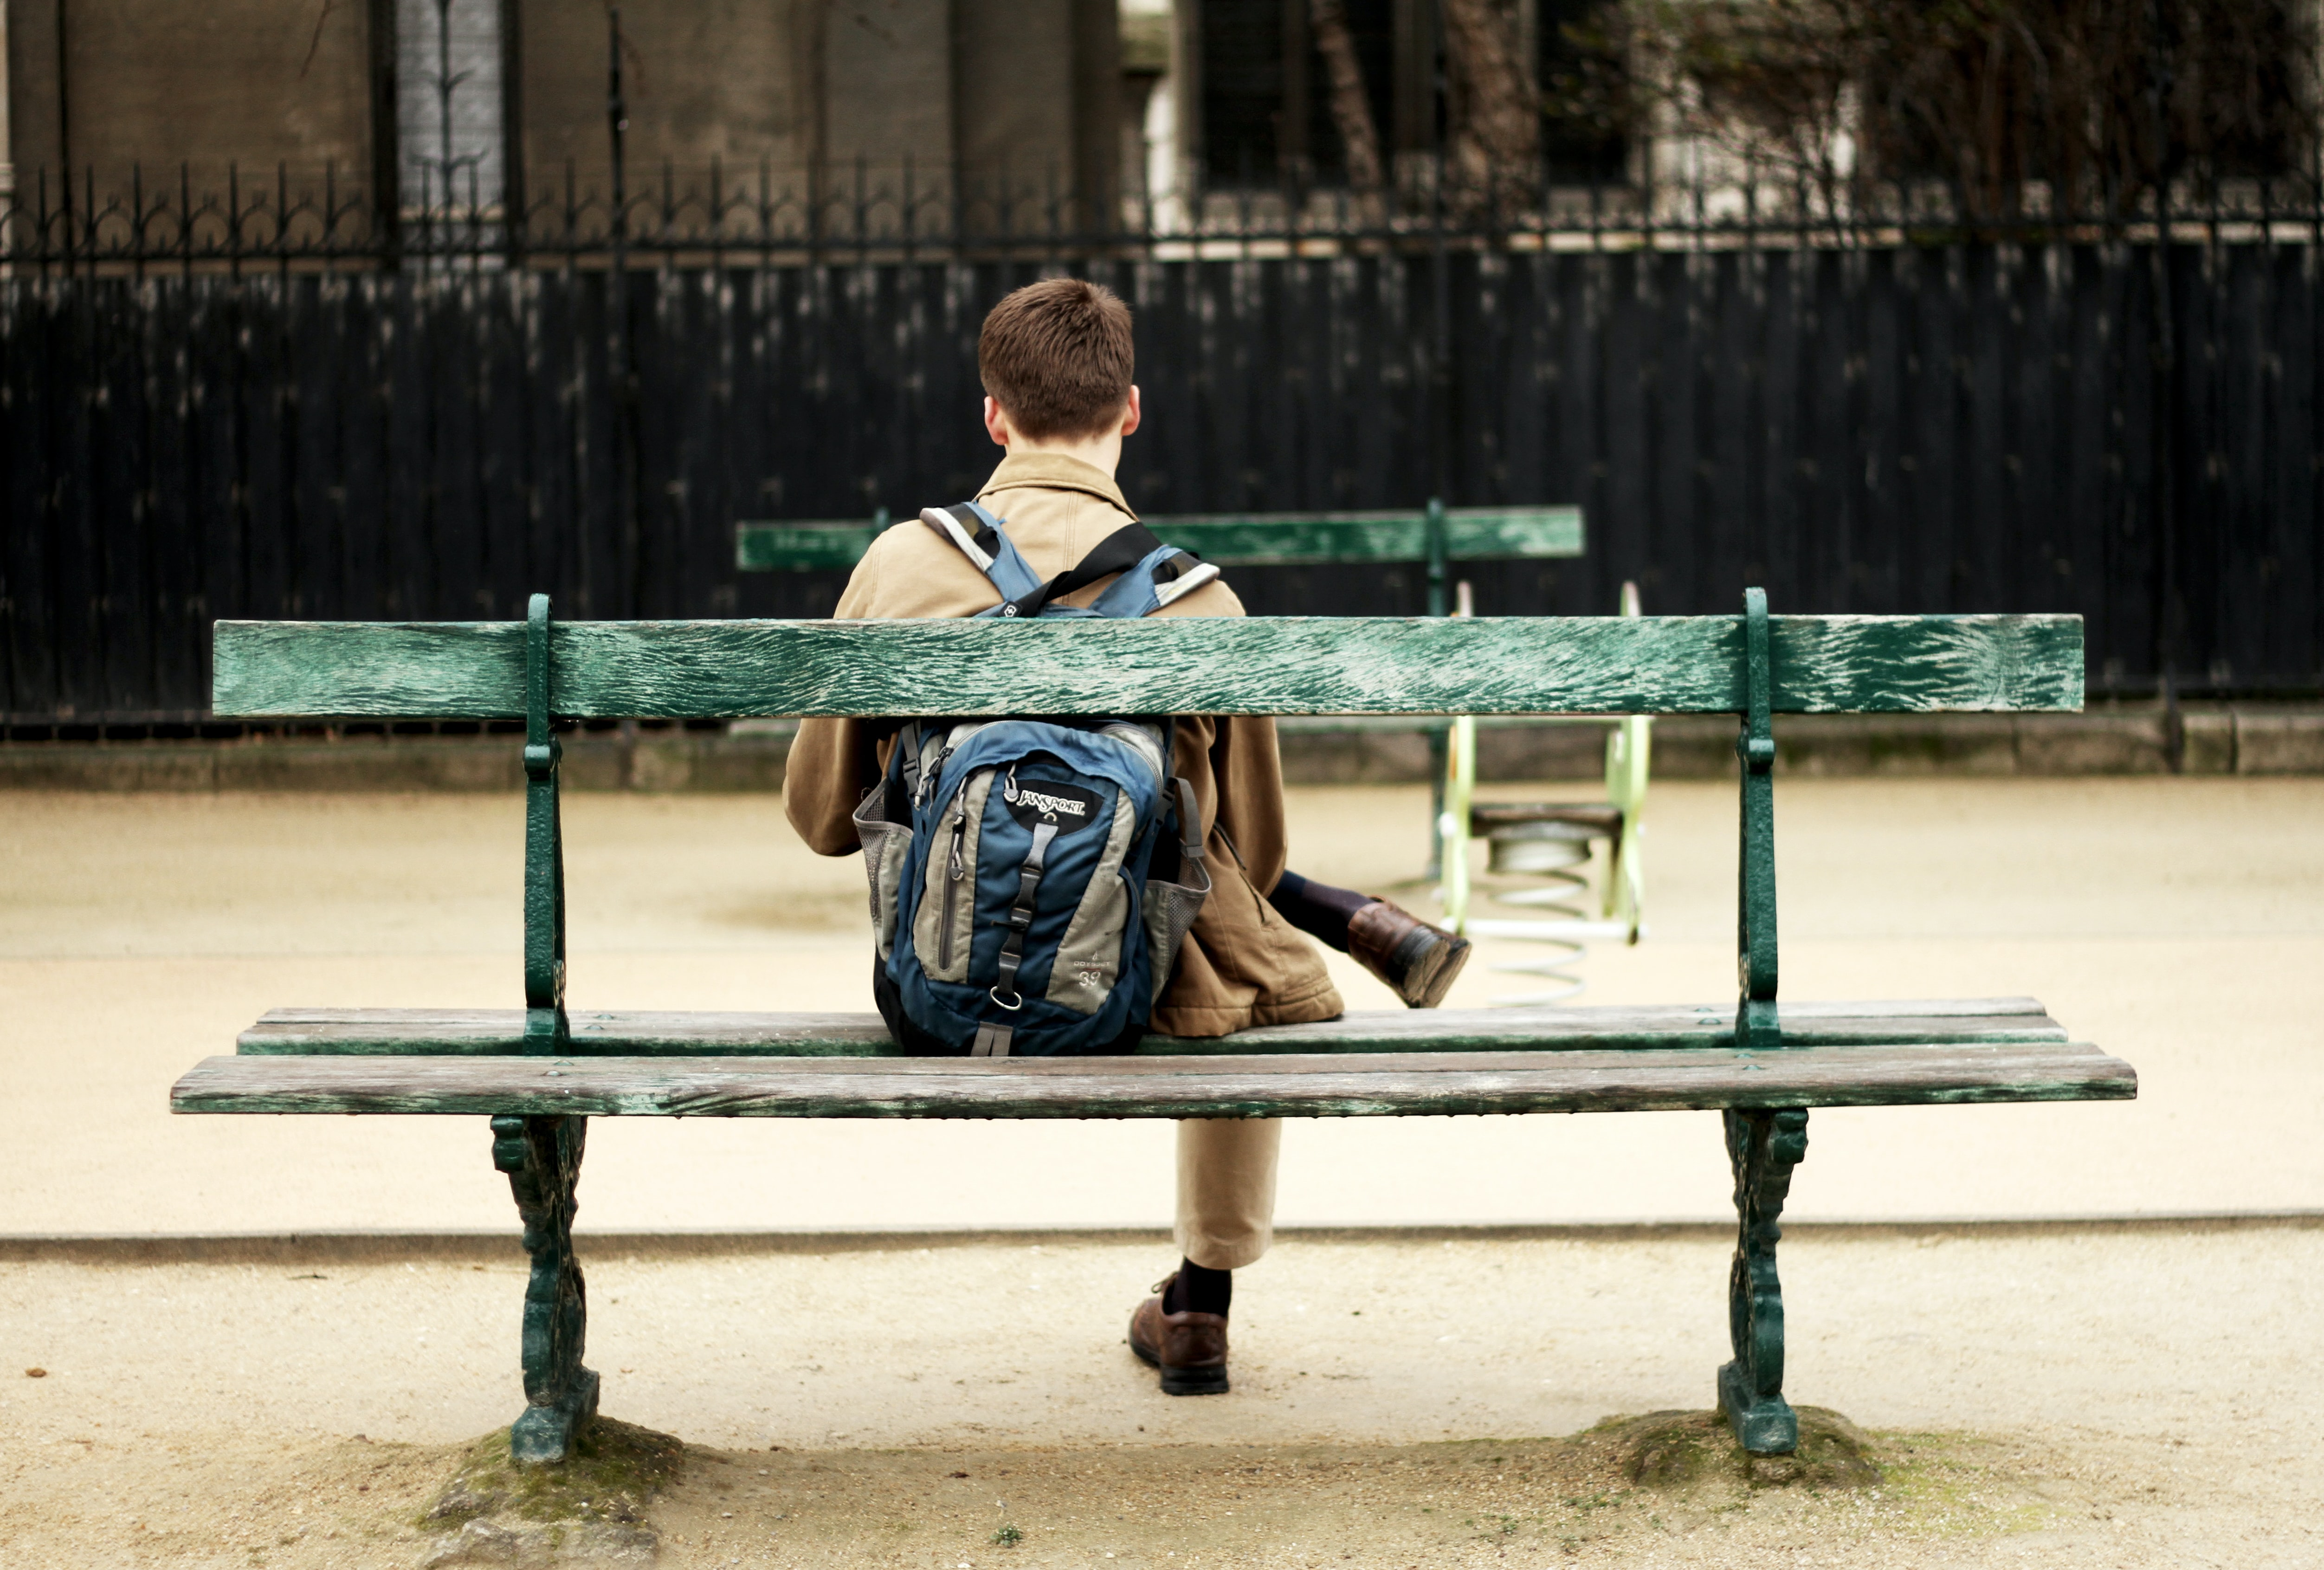 A person in a backpack sits on an outdoor bench, crossing their legs